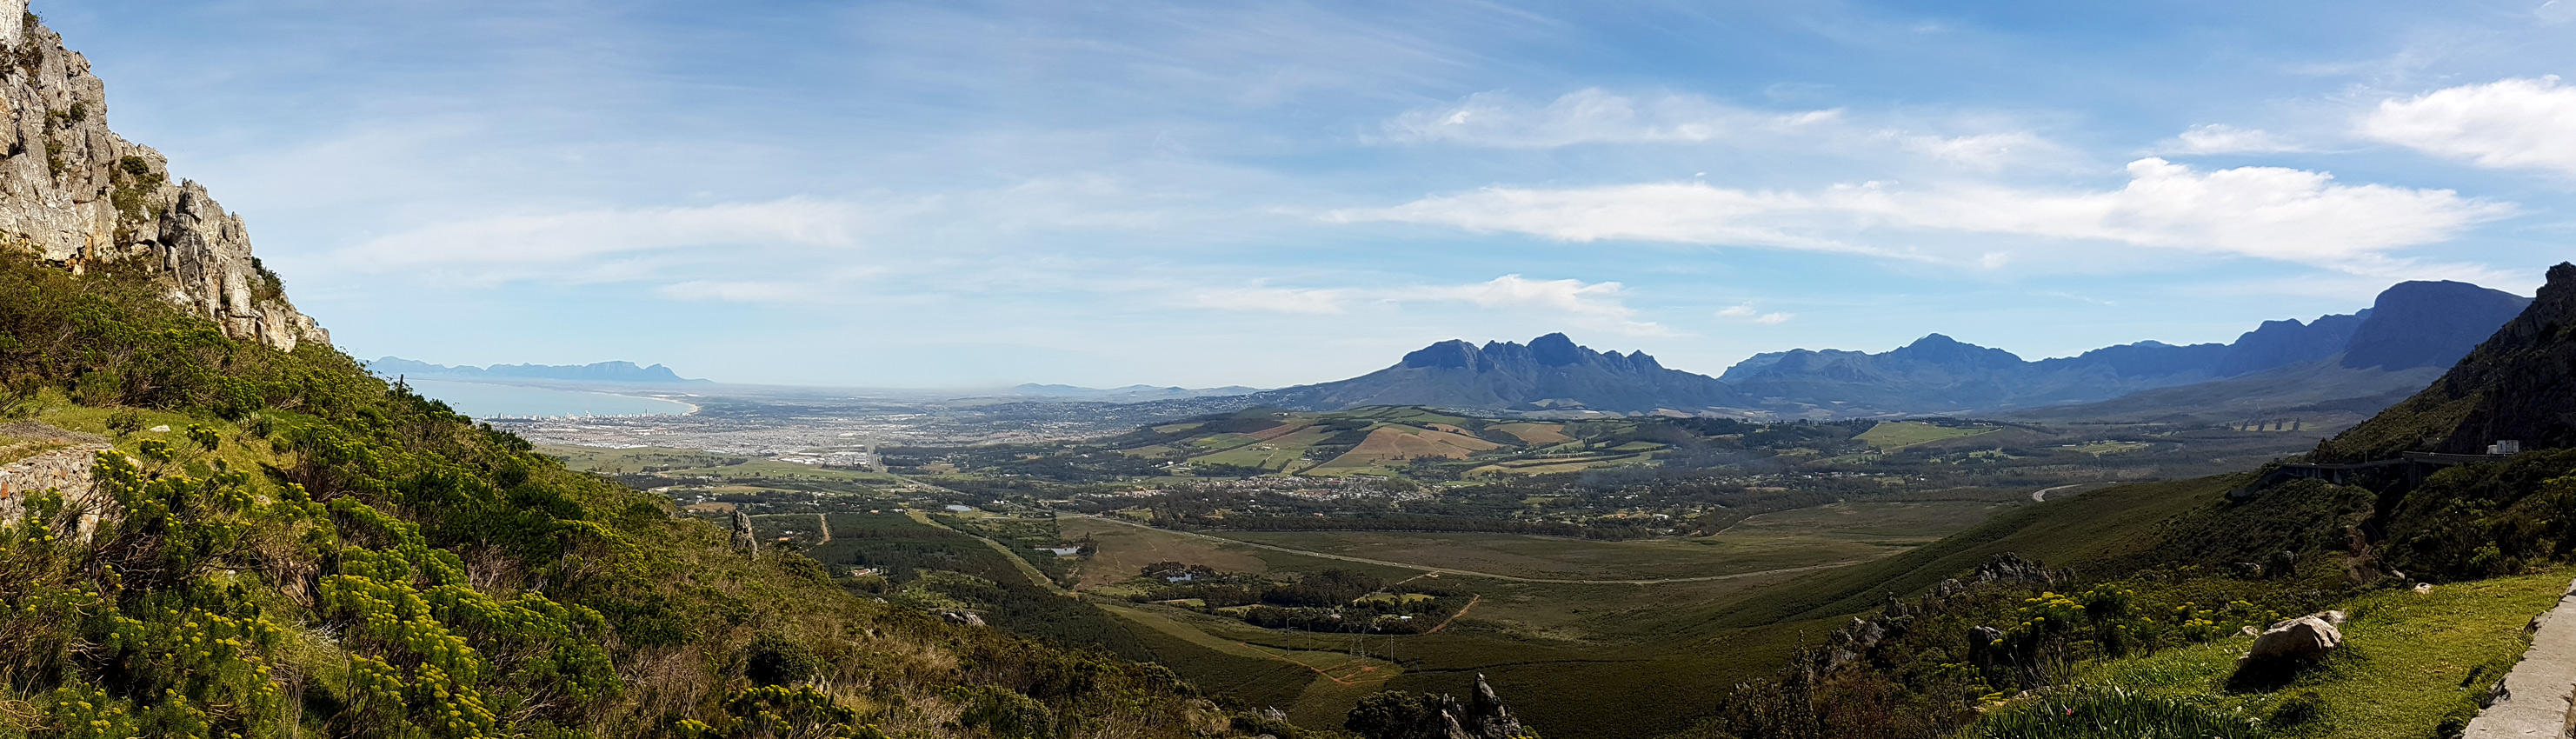 View from Stellenbosch to Cape Town